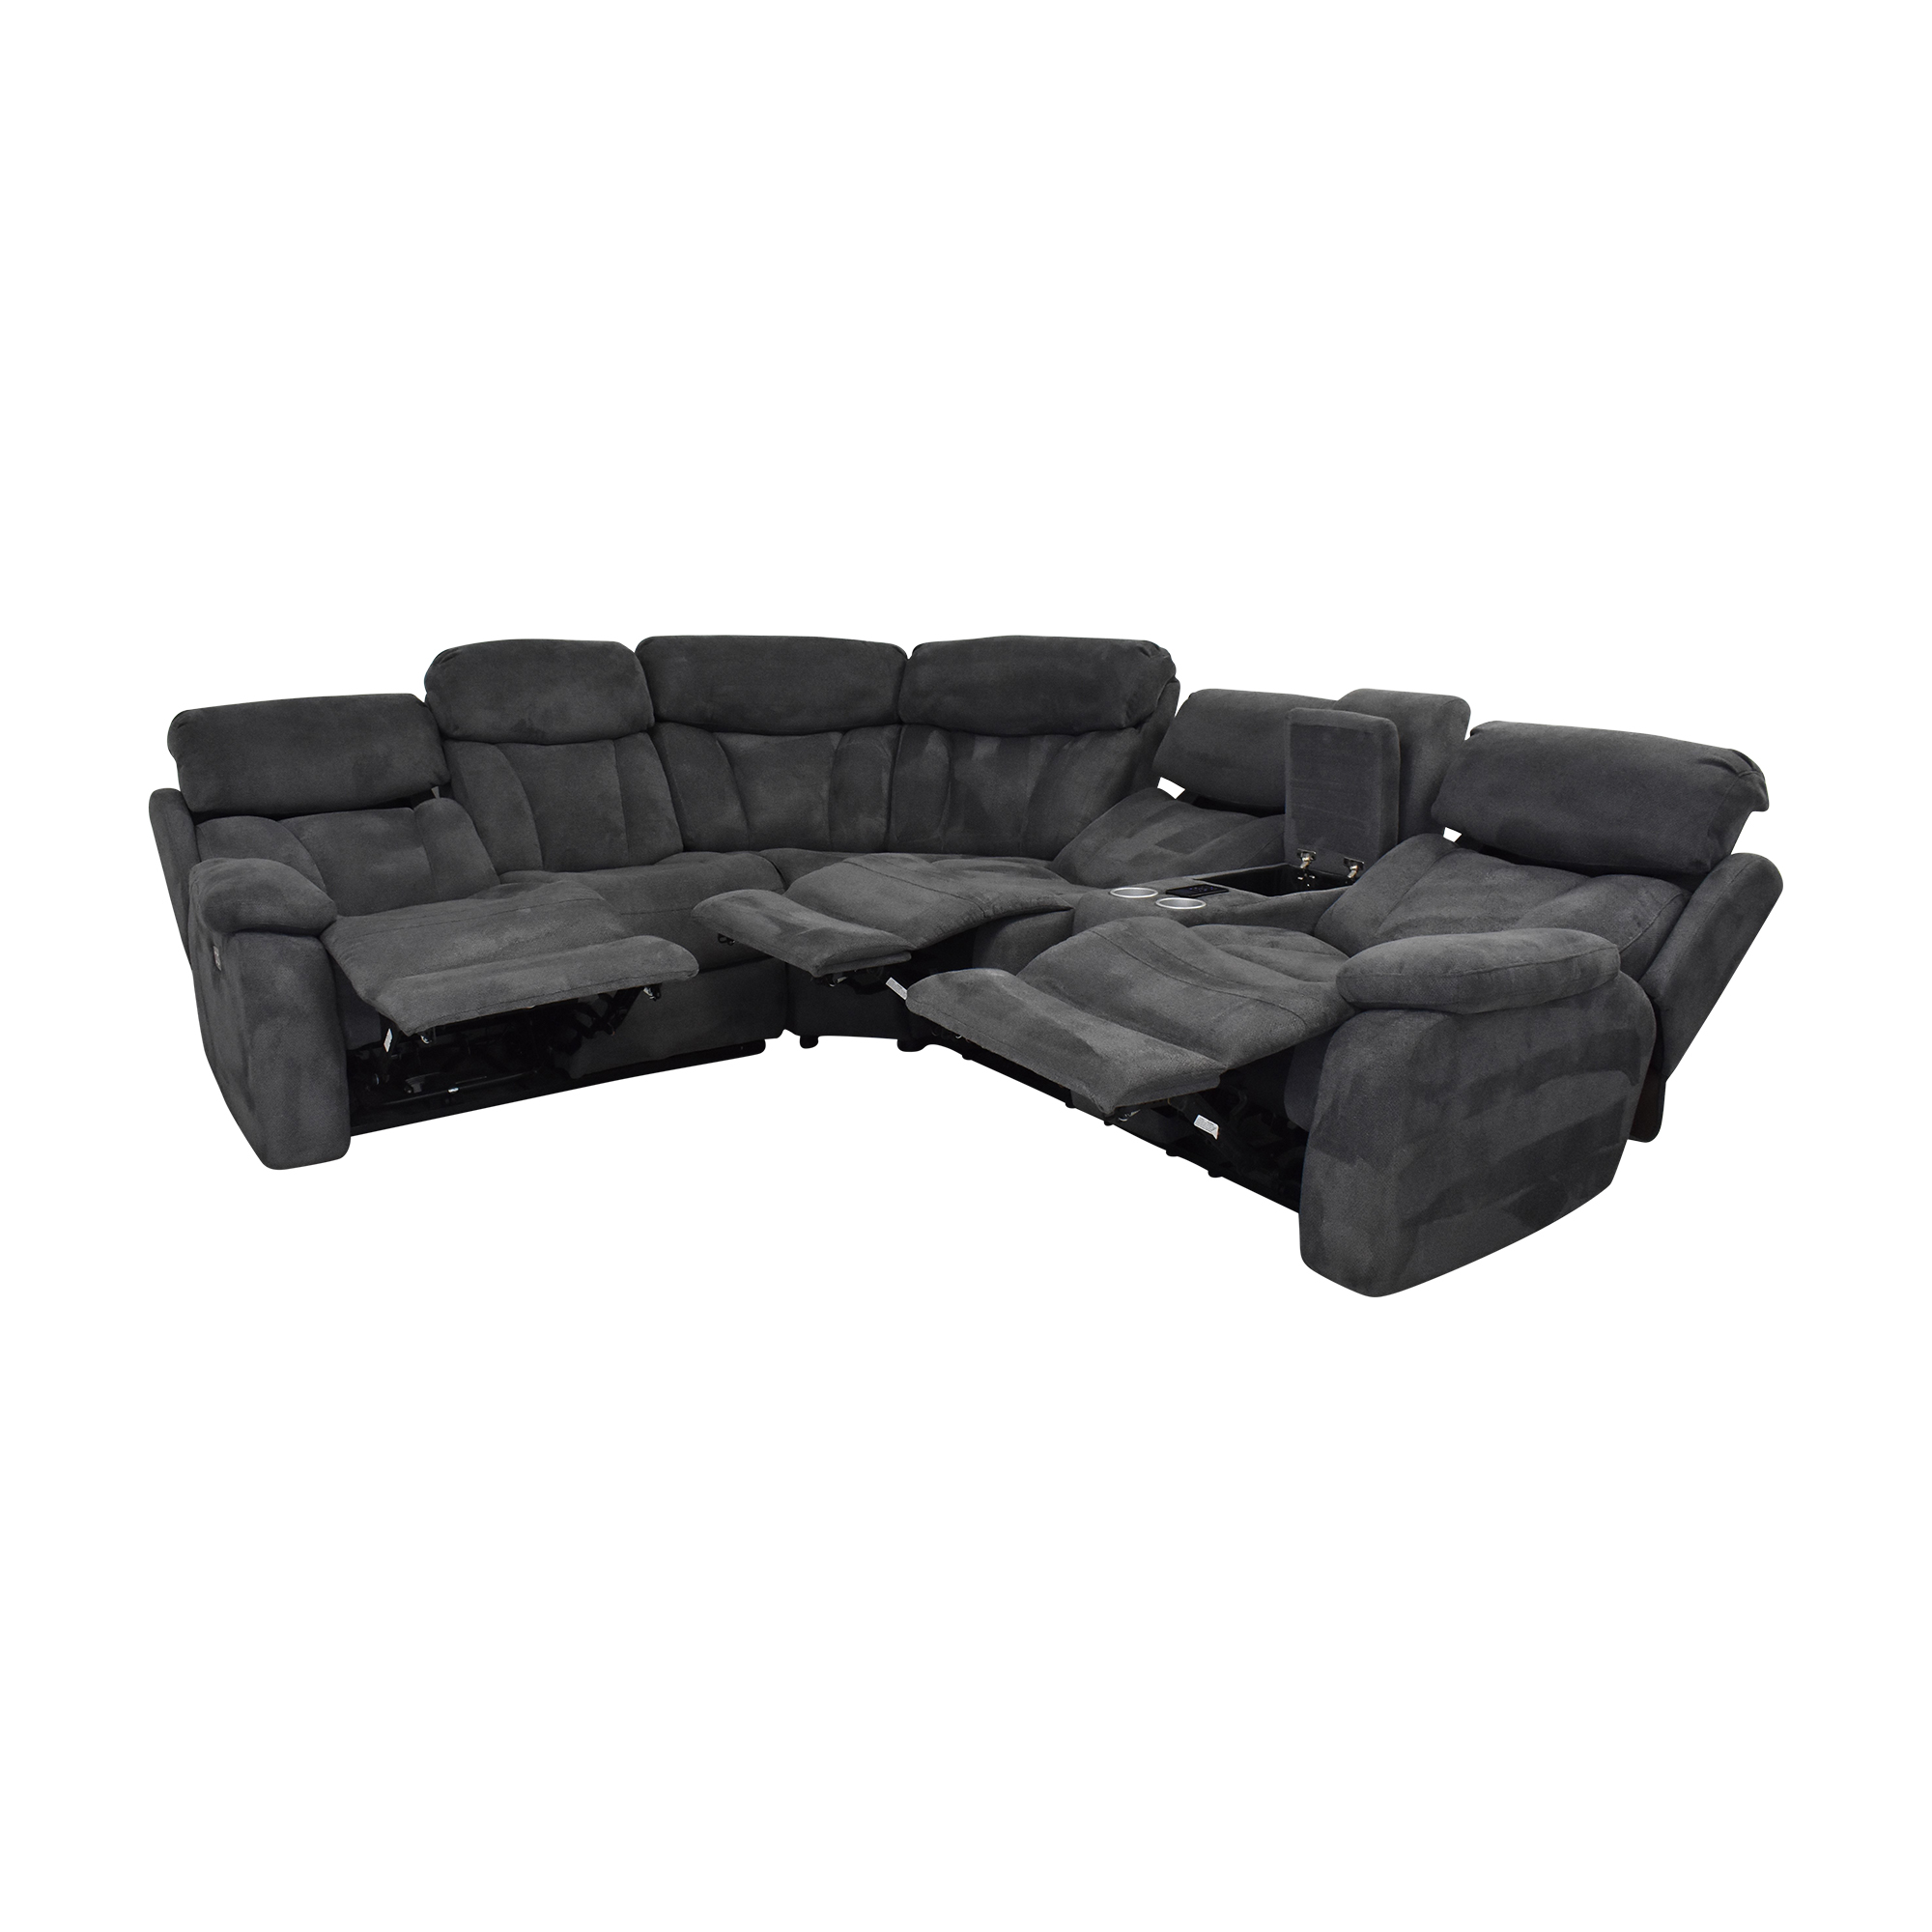 Raymour & Flanigan Raymour & Flanigan Connell Reclining Sectional Sofa second hand